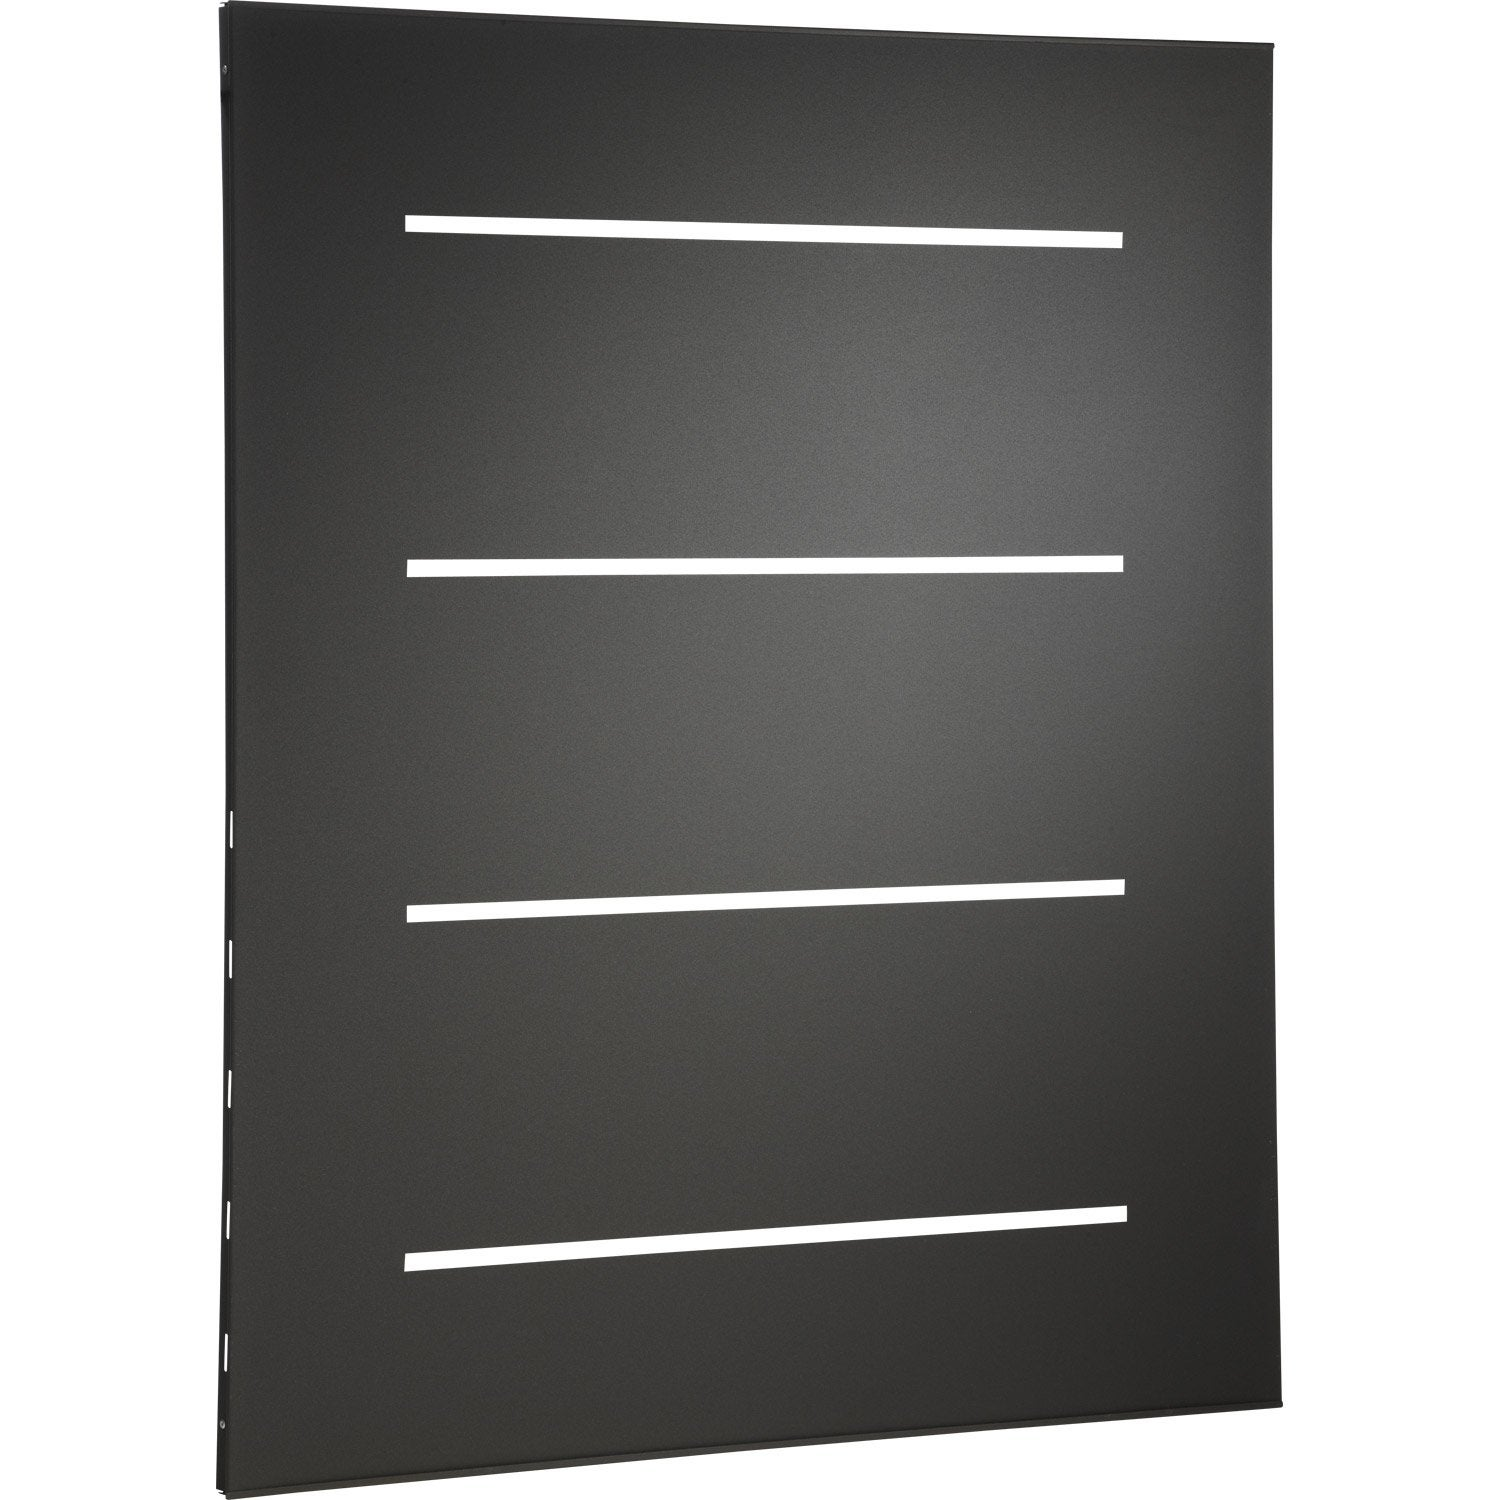 plaque de protection murale horizon gris cm leroy merlin. Black Bedroom Furniture Sets. Home Design Ideas